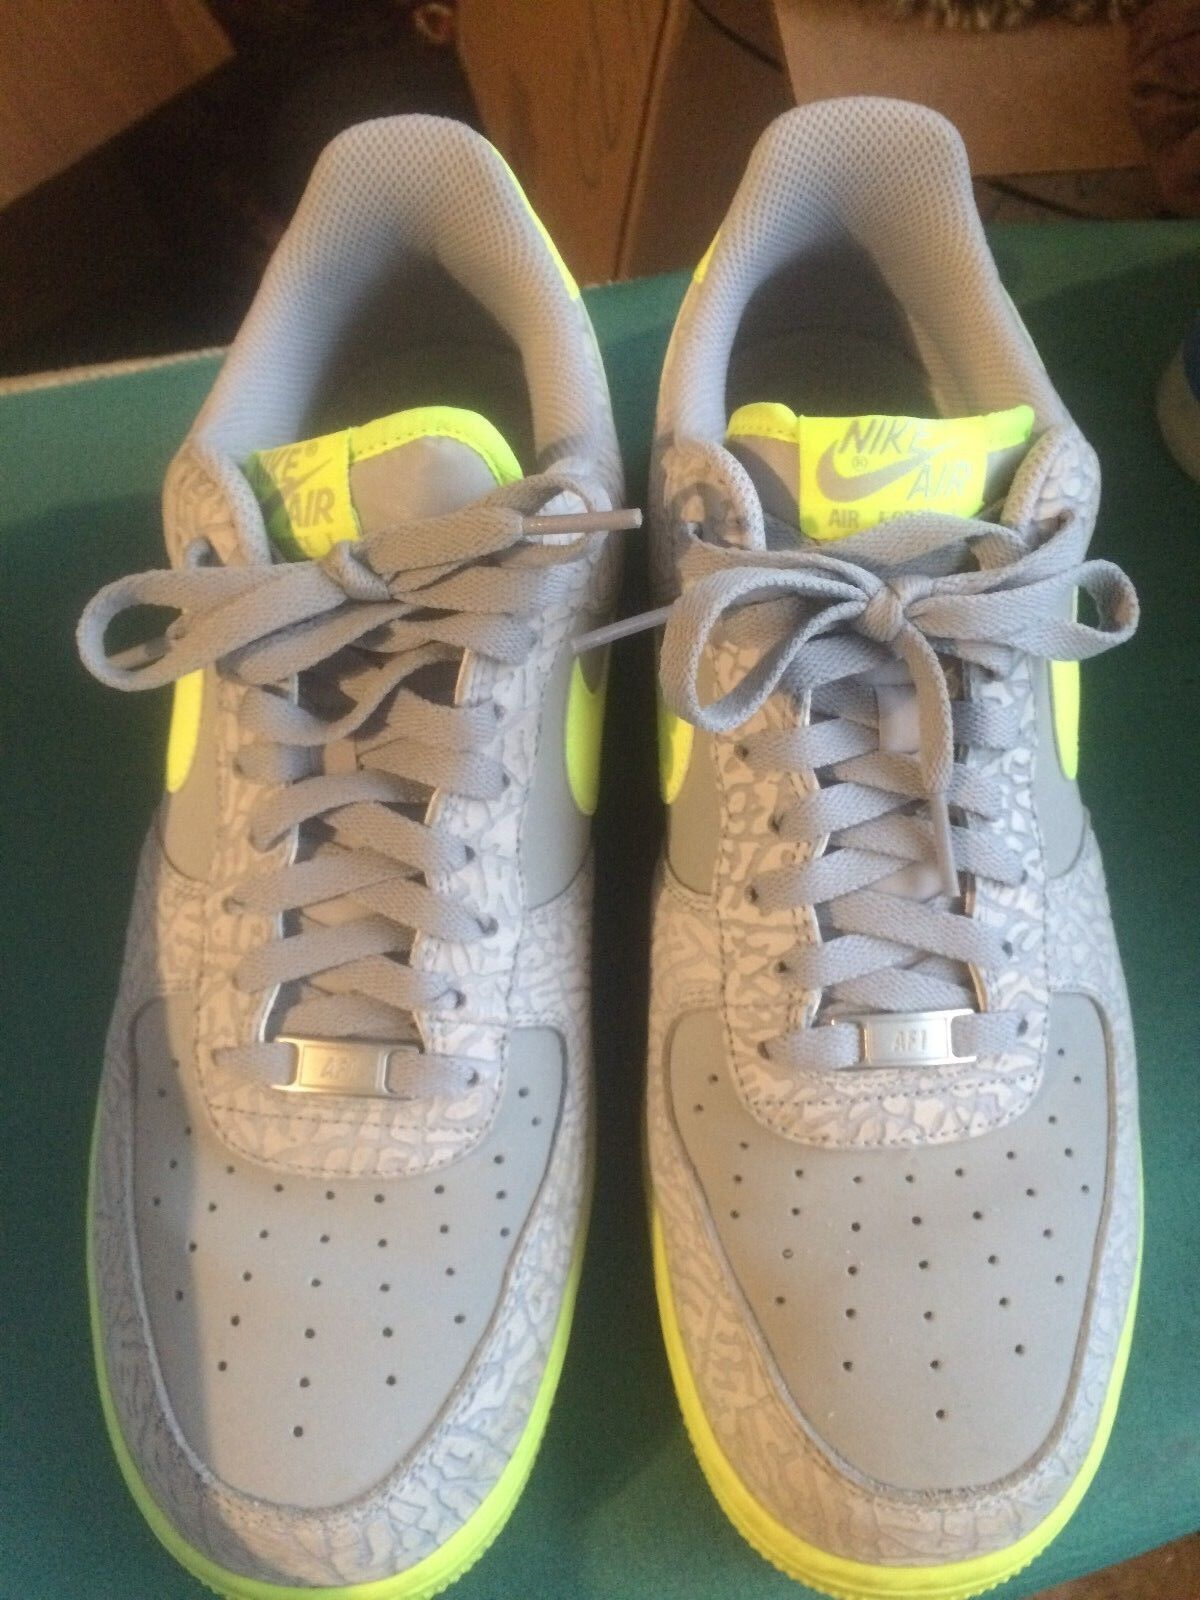 Uomo Nike Air Force 1 Shoes -Size 11.5